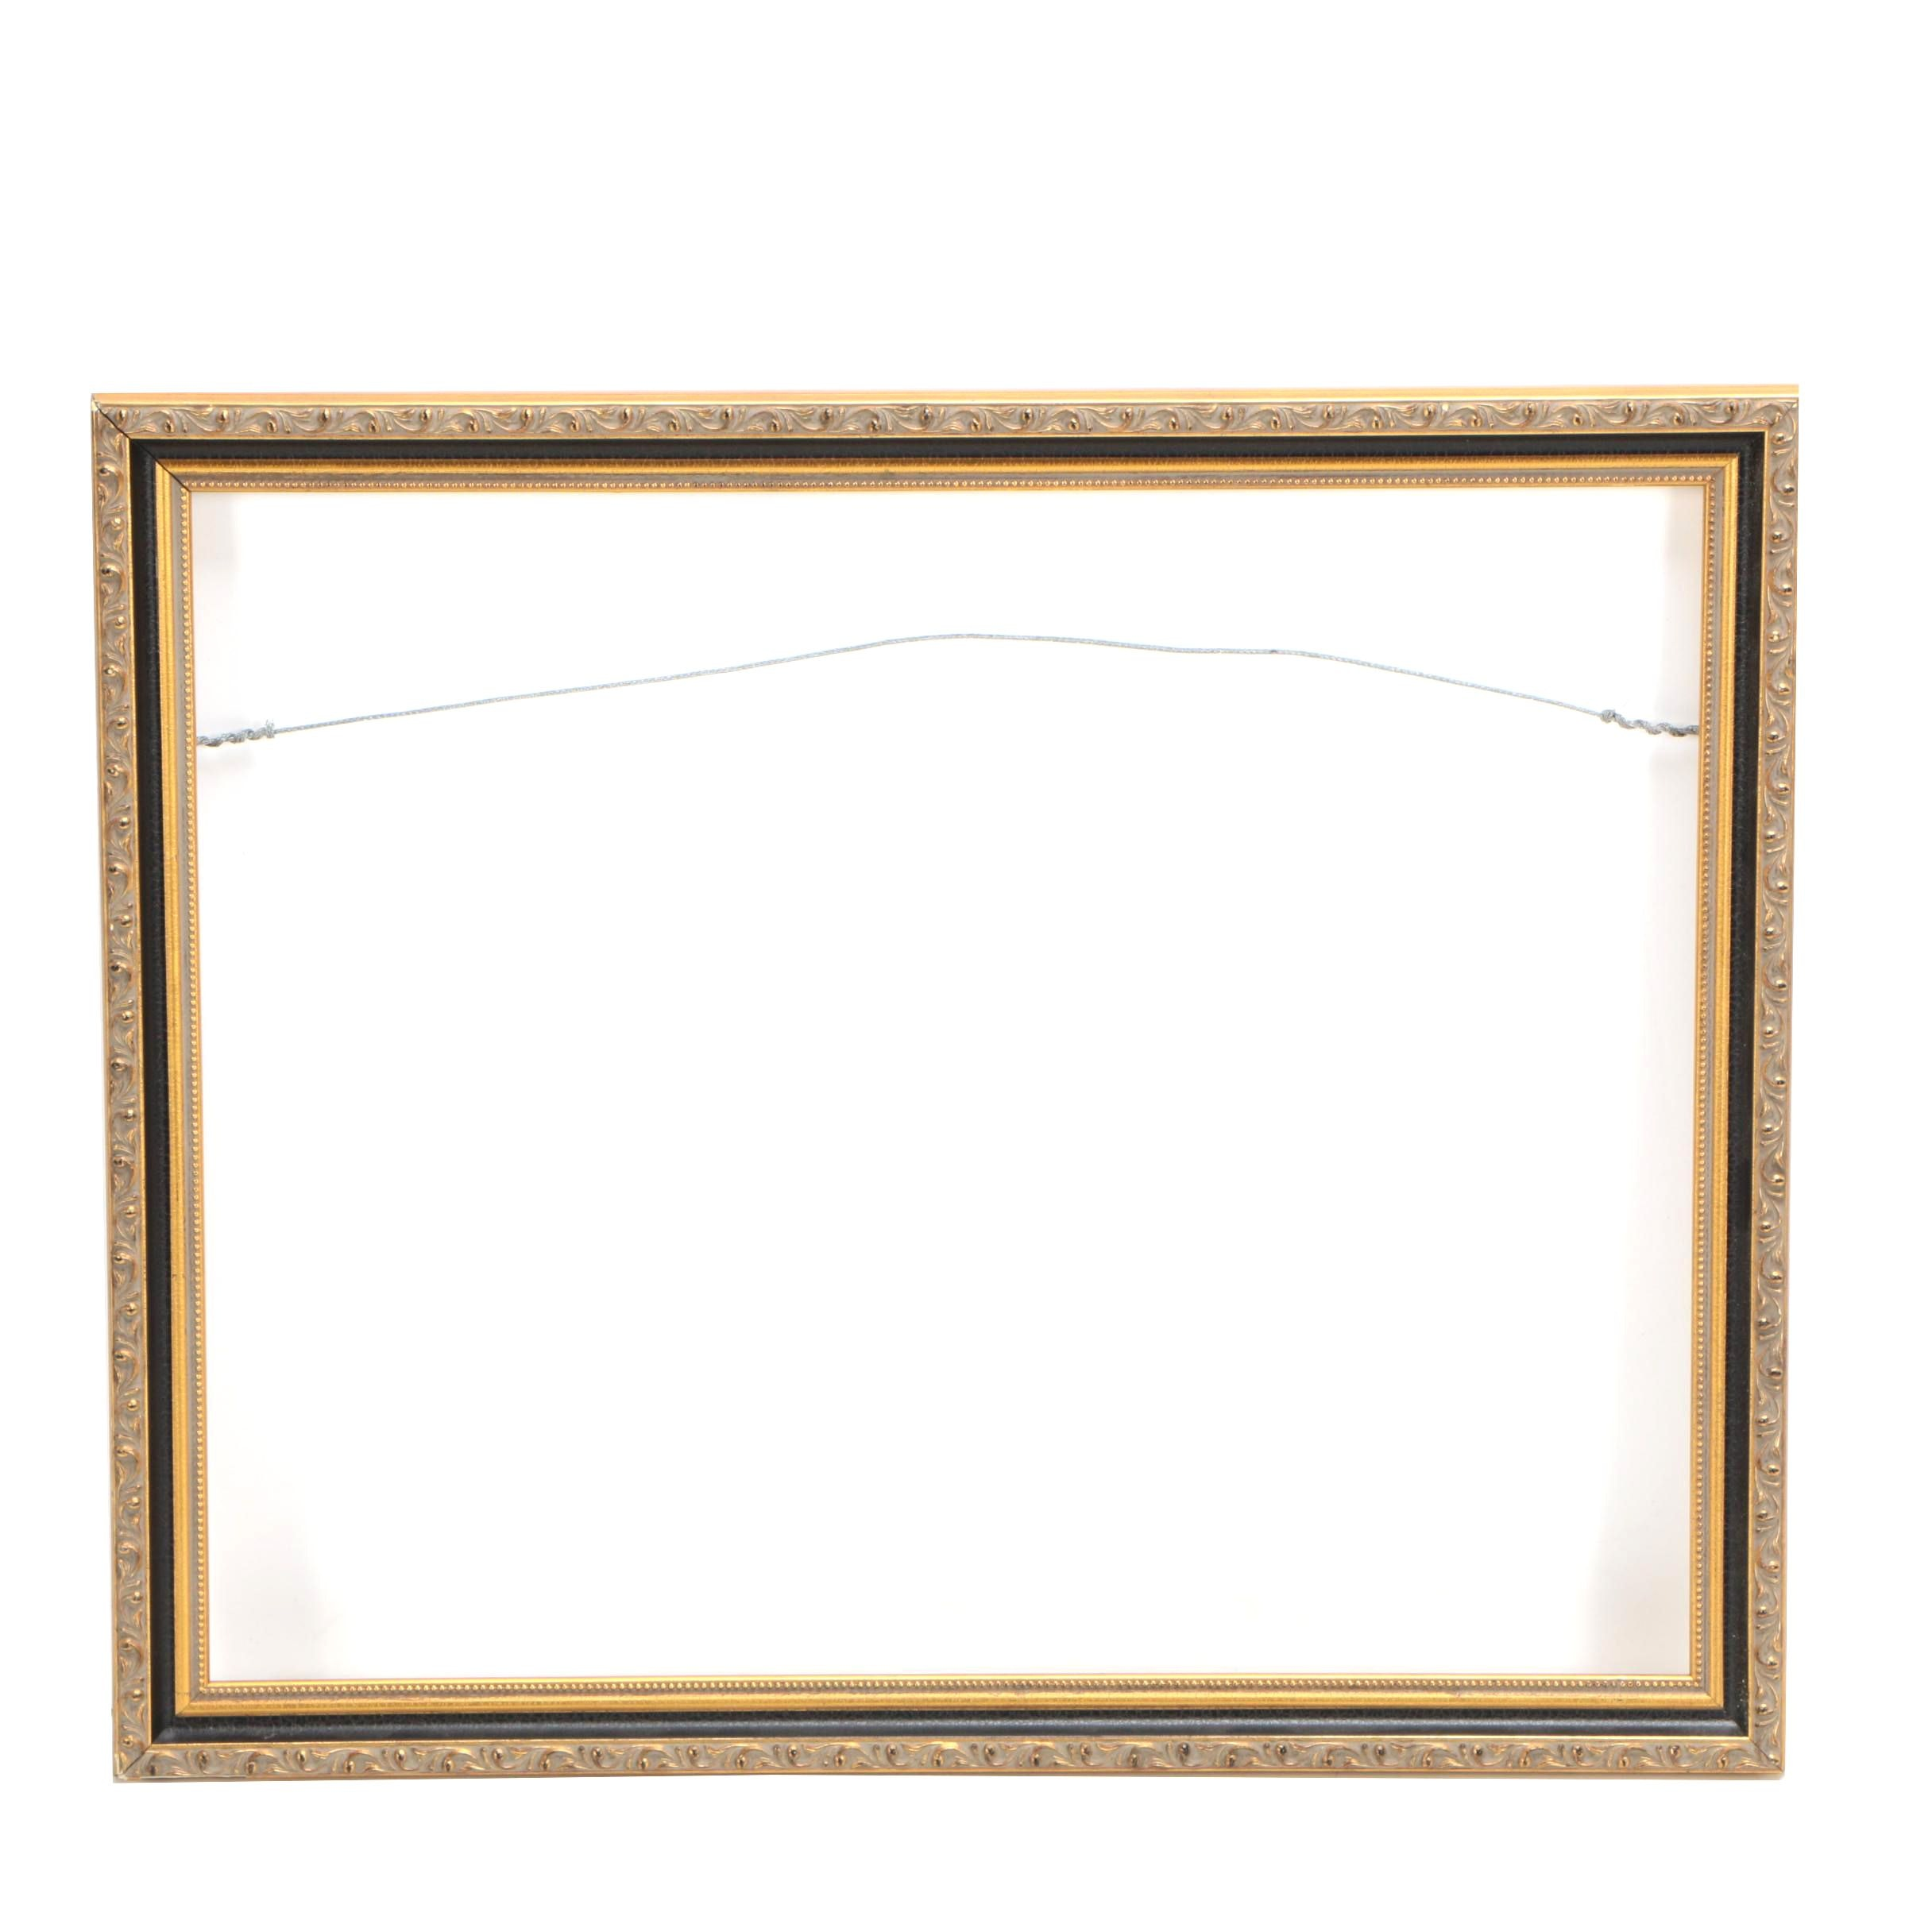 Rectangular Wood and Gesso Frame